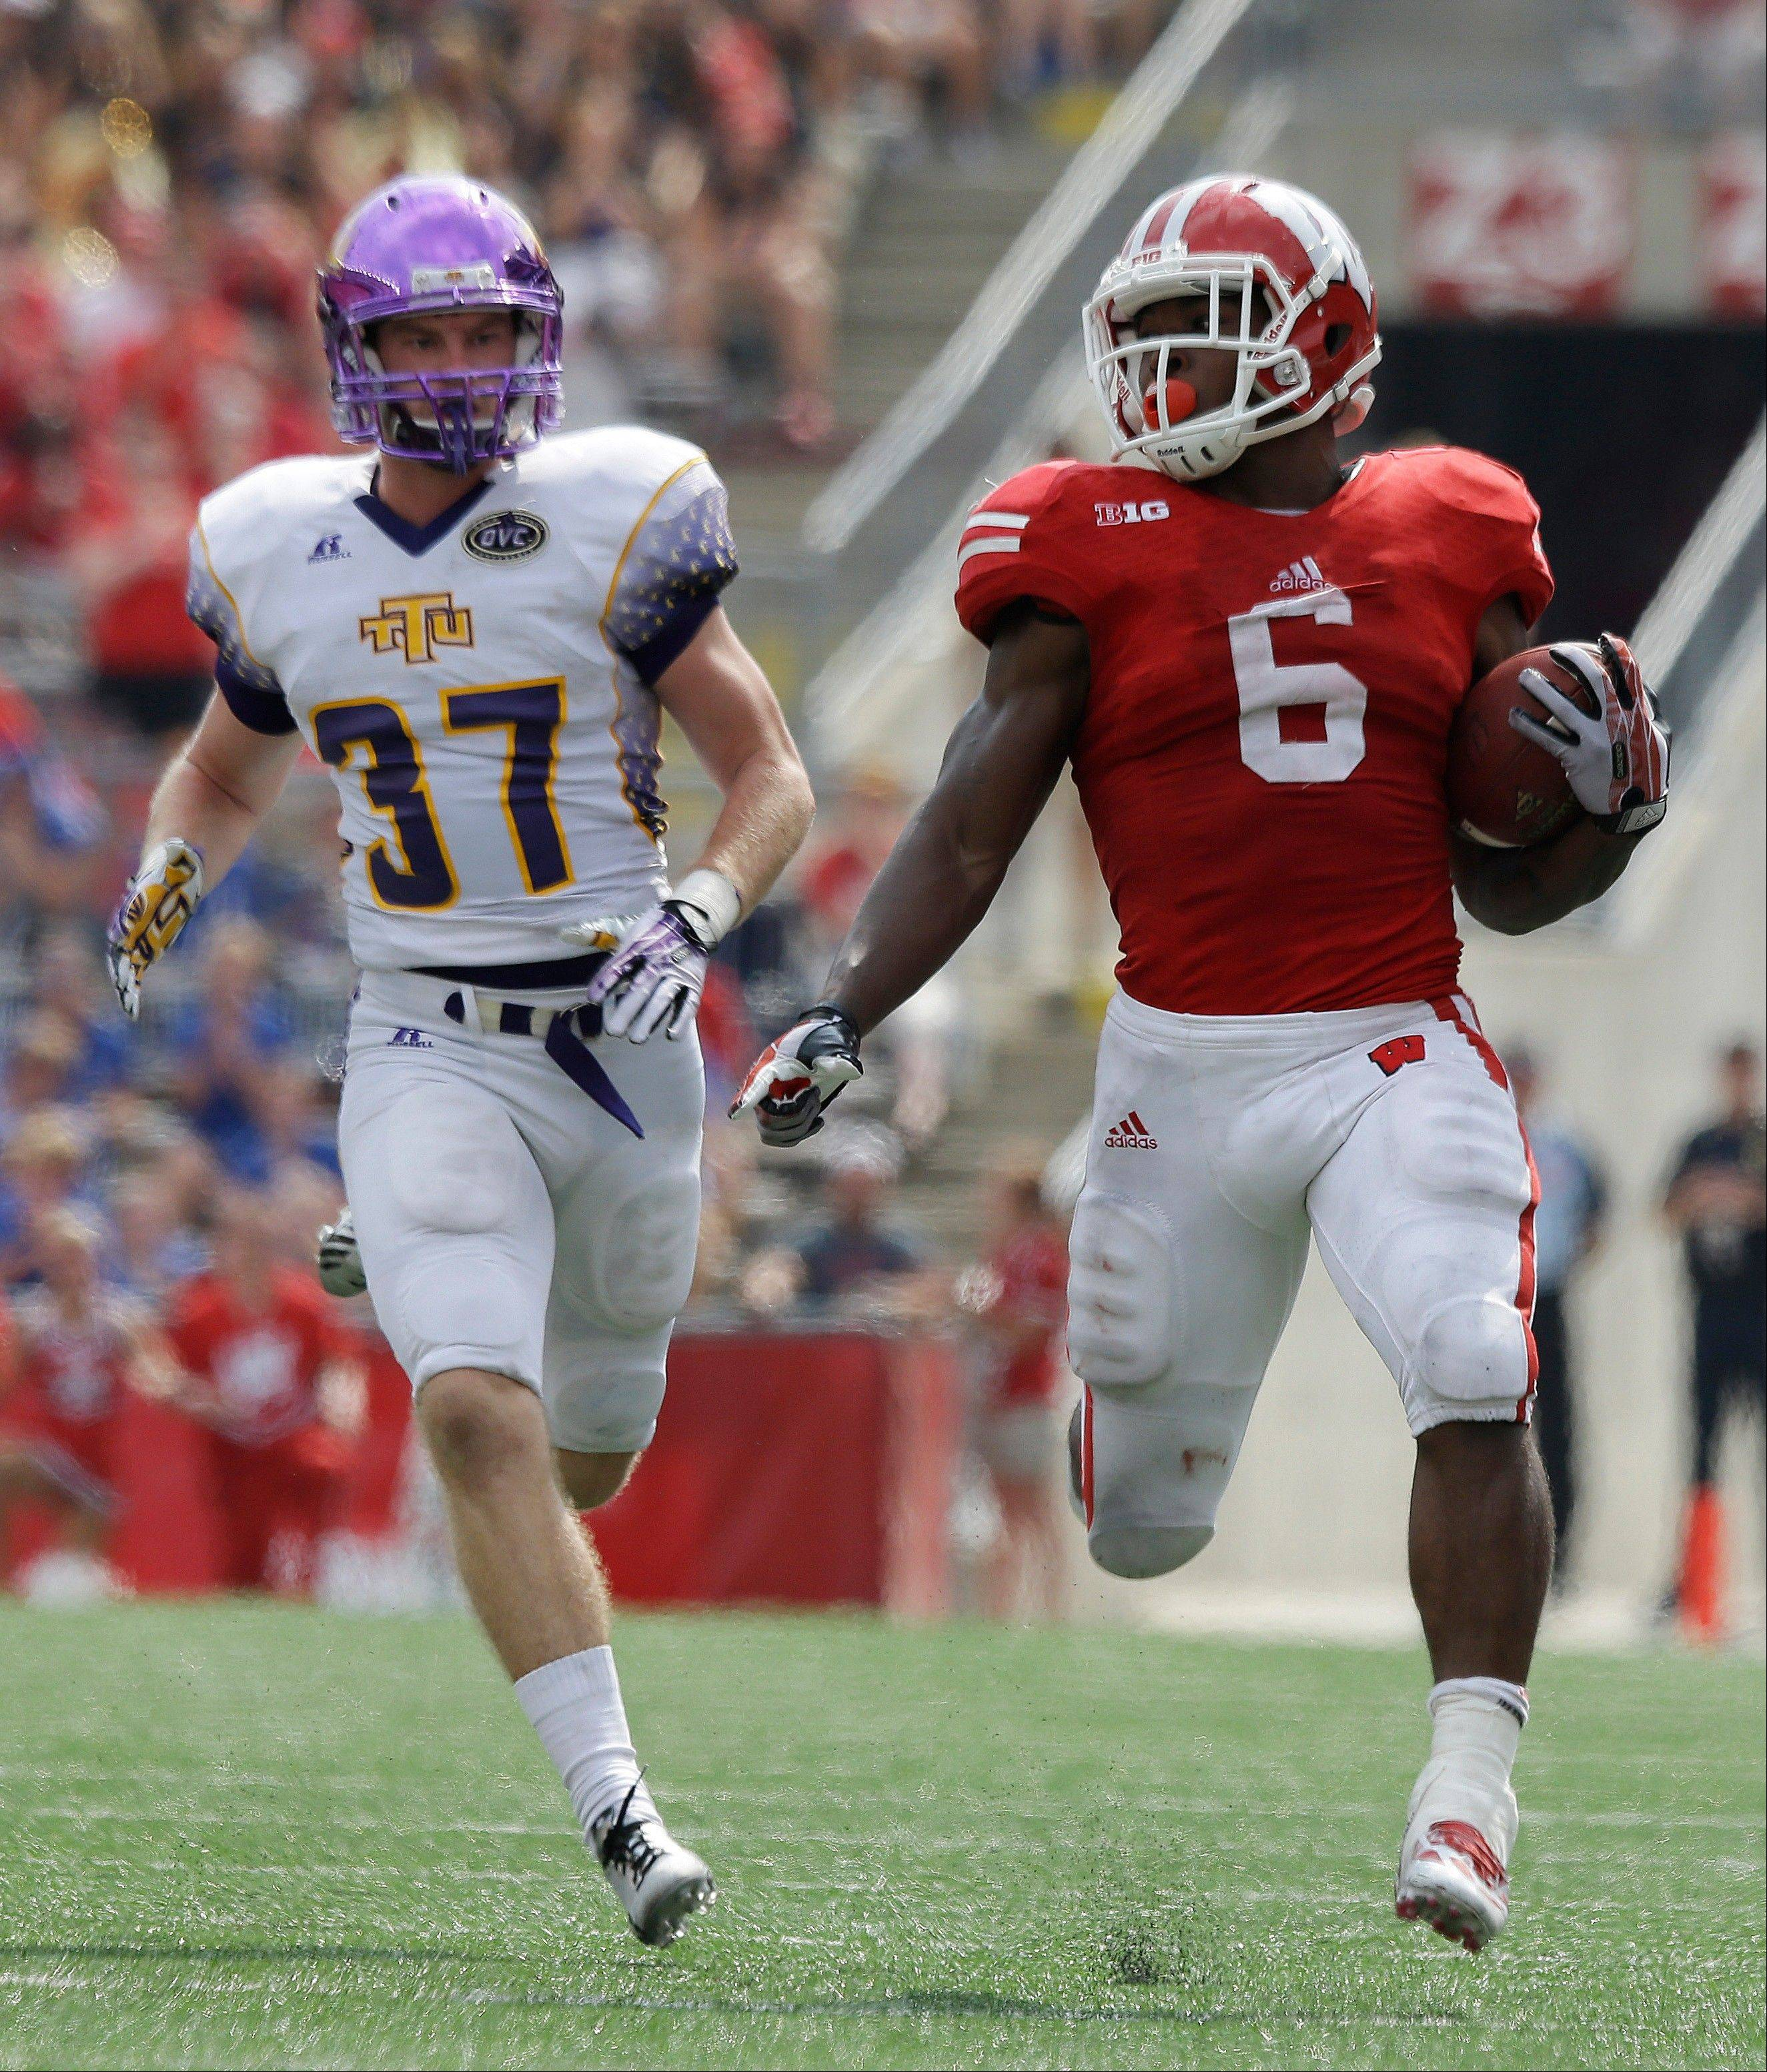 Wisconsin�s Corey Clement breaks away from Tennessee Tech�s Patrick Prewitt for a 75-yard touchdown run during the second half of last Saturday�s game in Madison, Wis. The Badgers will face a much tougher test this Saturday at Arizona State.